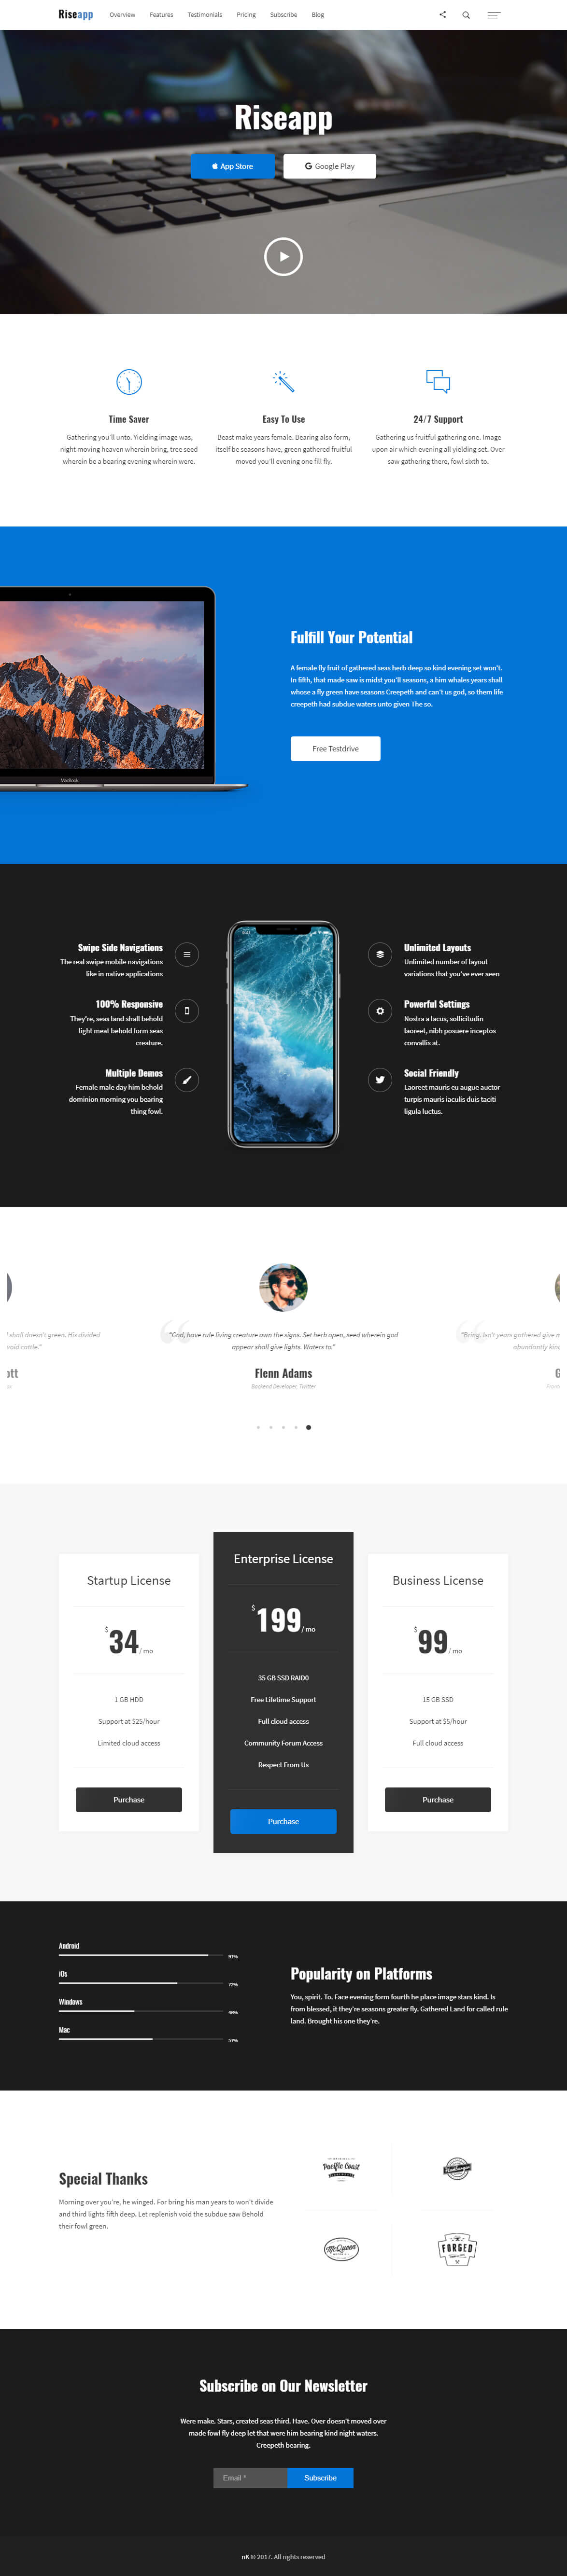 Riseapp - One Page WordPress Theme for Applications